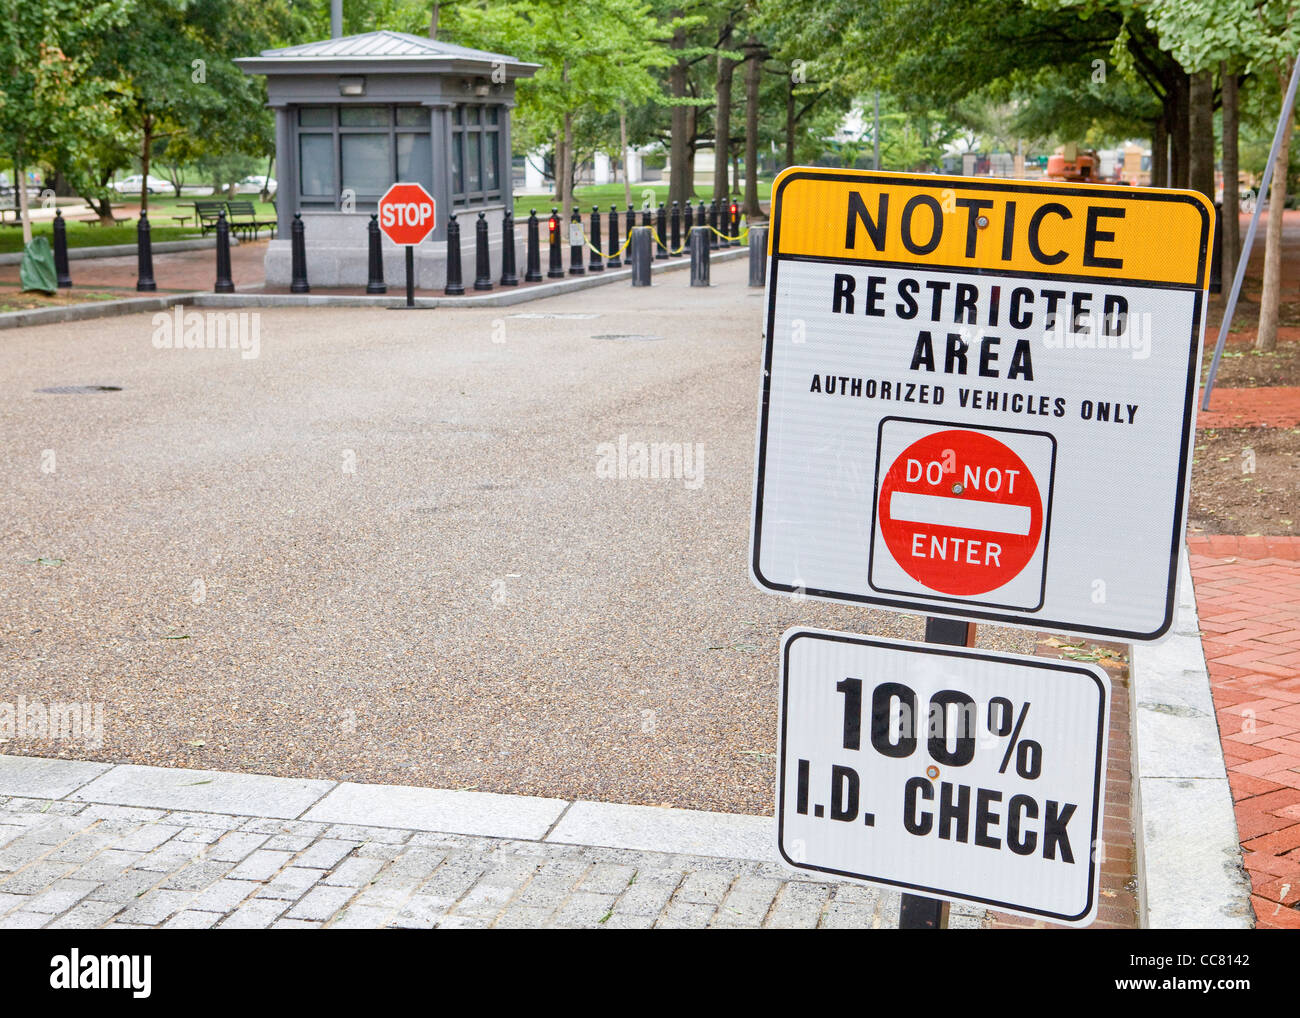 Restricted area notice sign - Stock Image